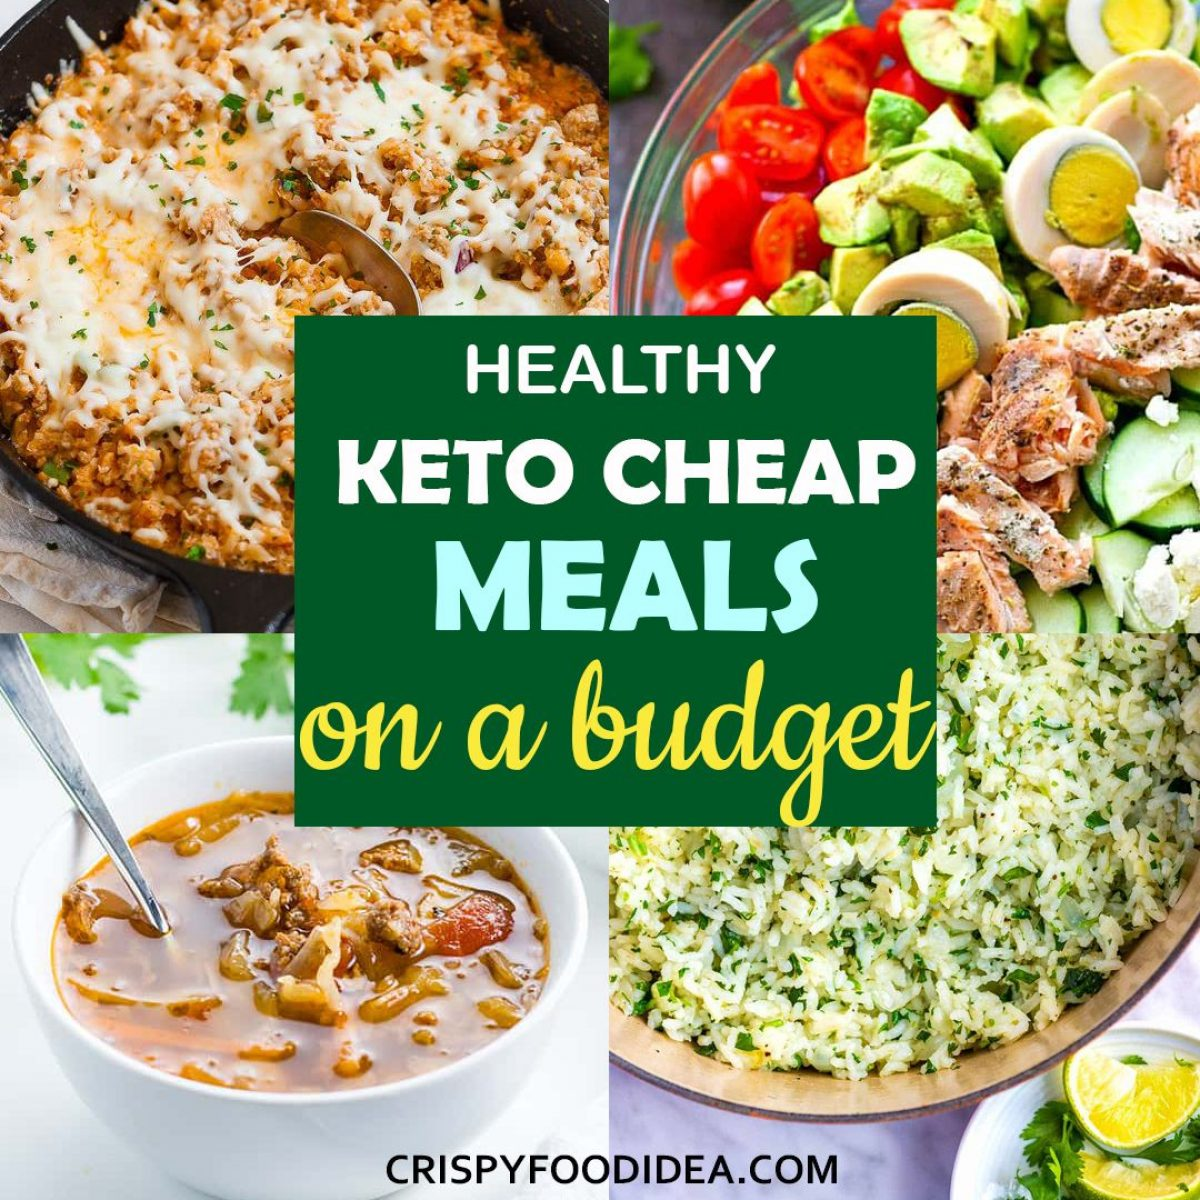 Easy Cheap Keto Meal Recipes You Can Get On A Budget